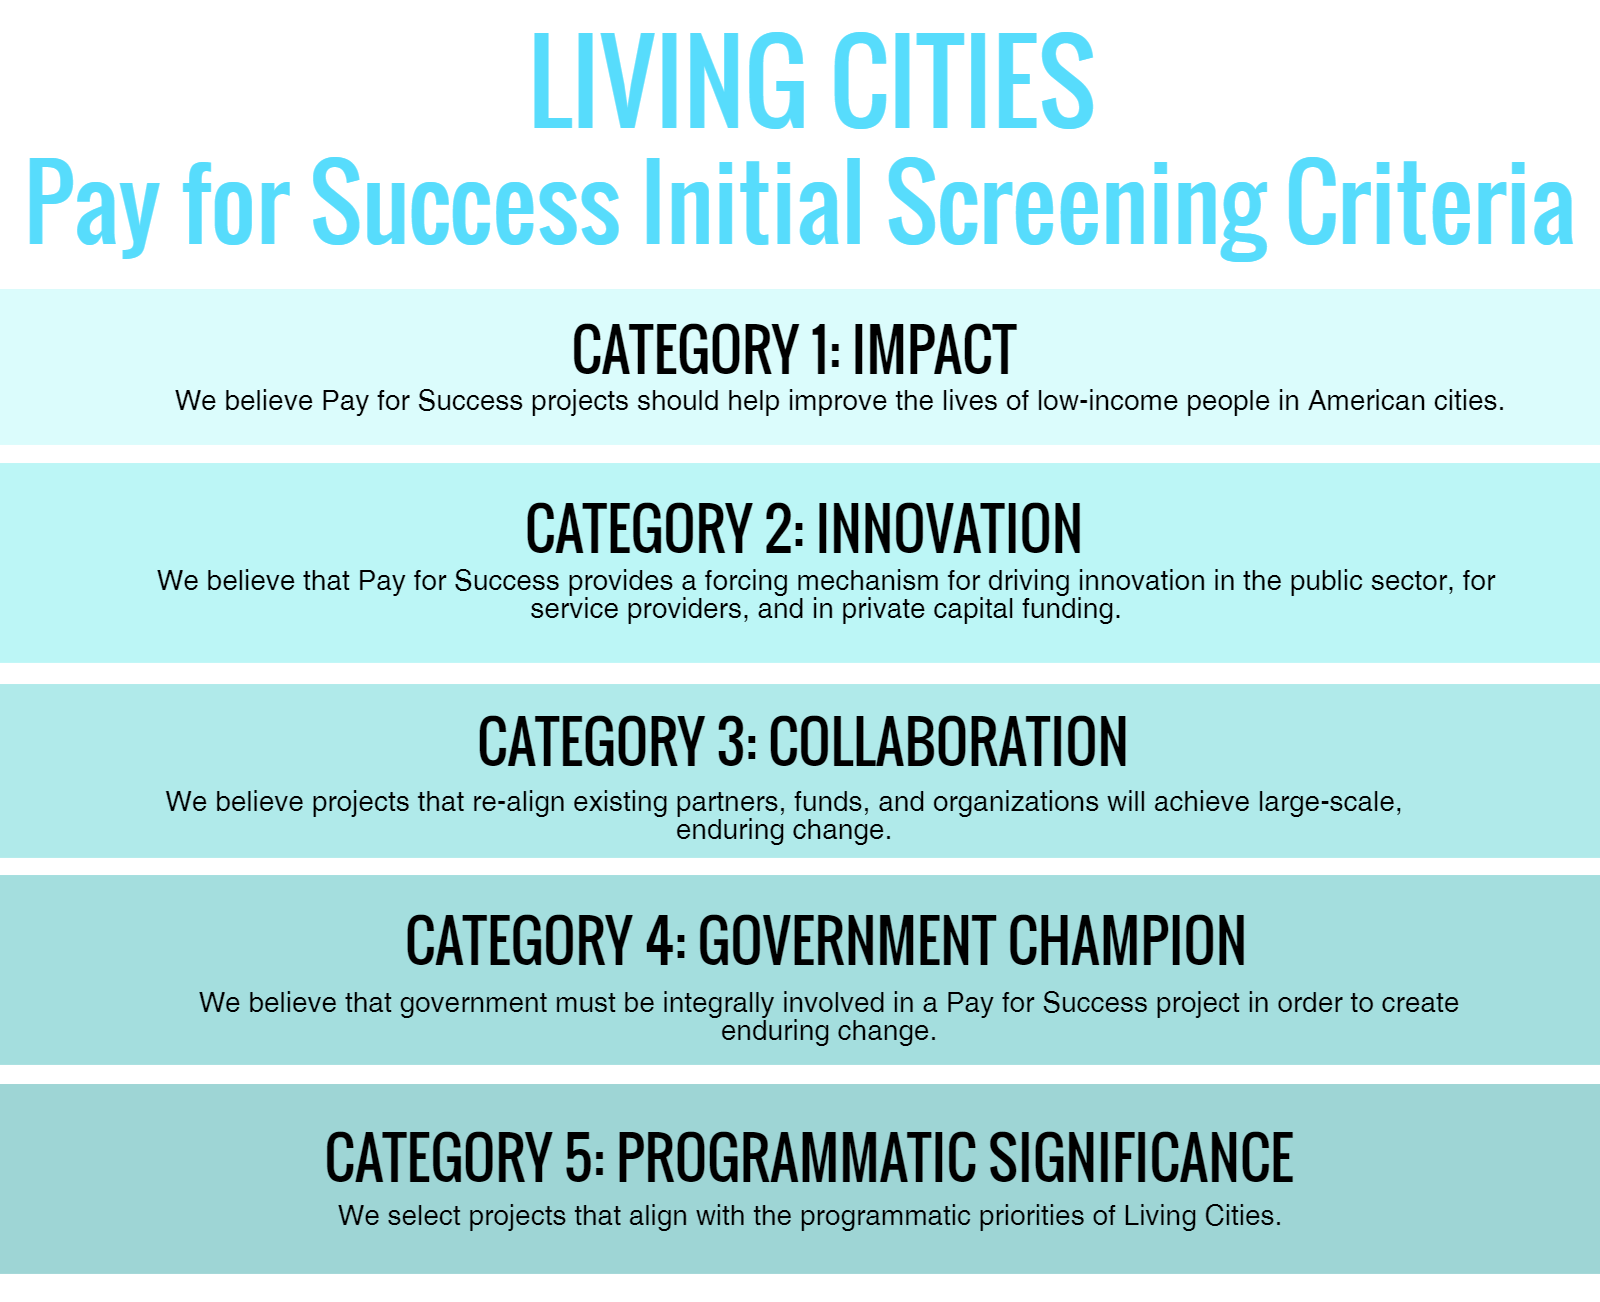 Living Cities Initial Pay For Success Screening Criteria, an infographic